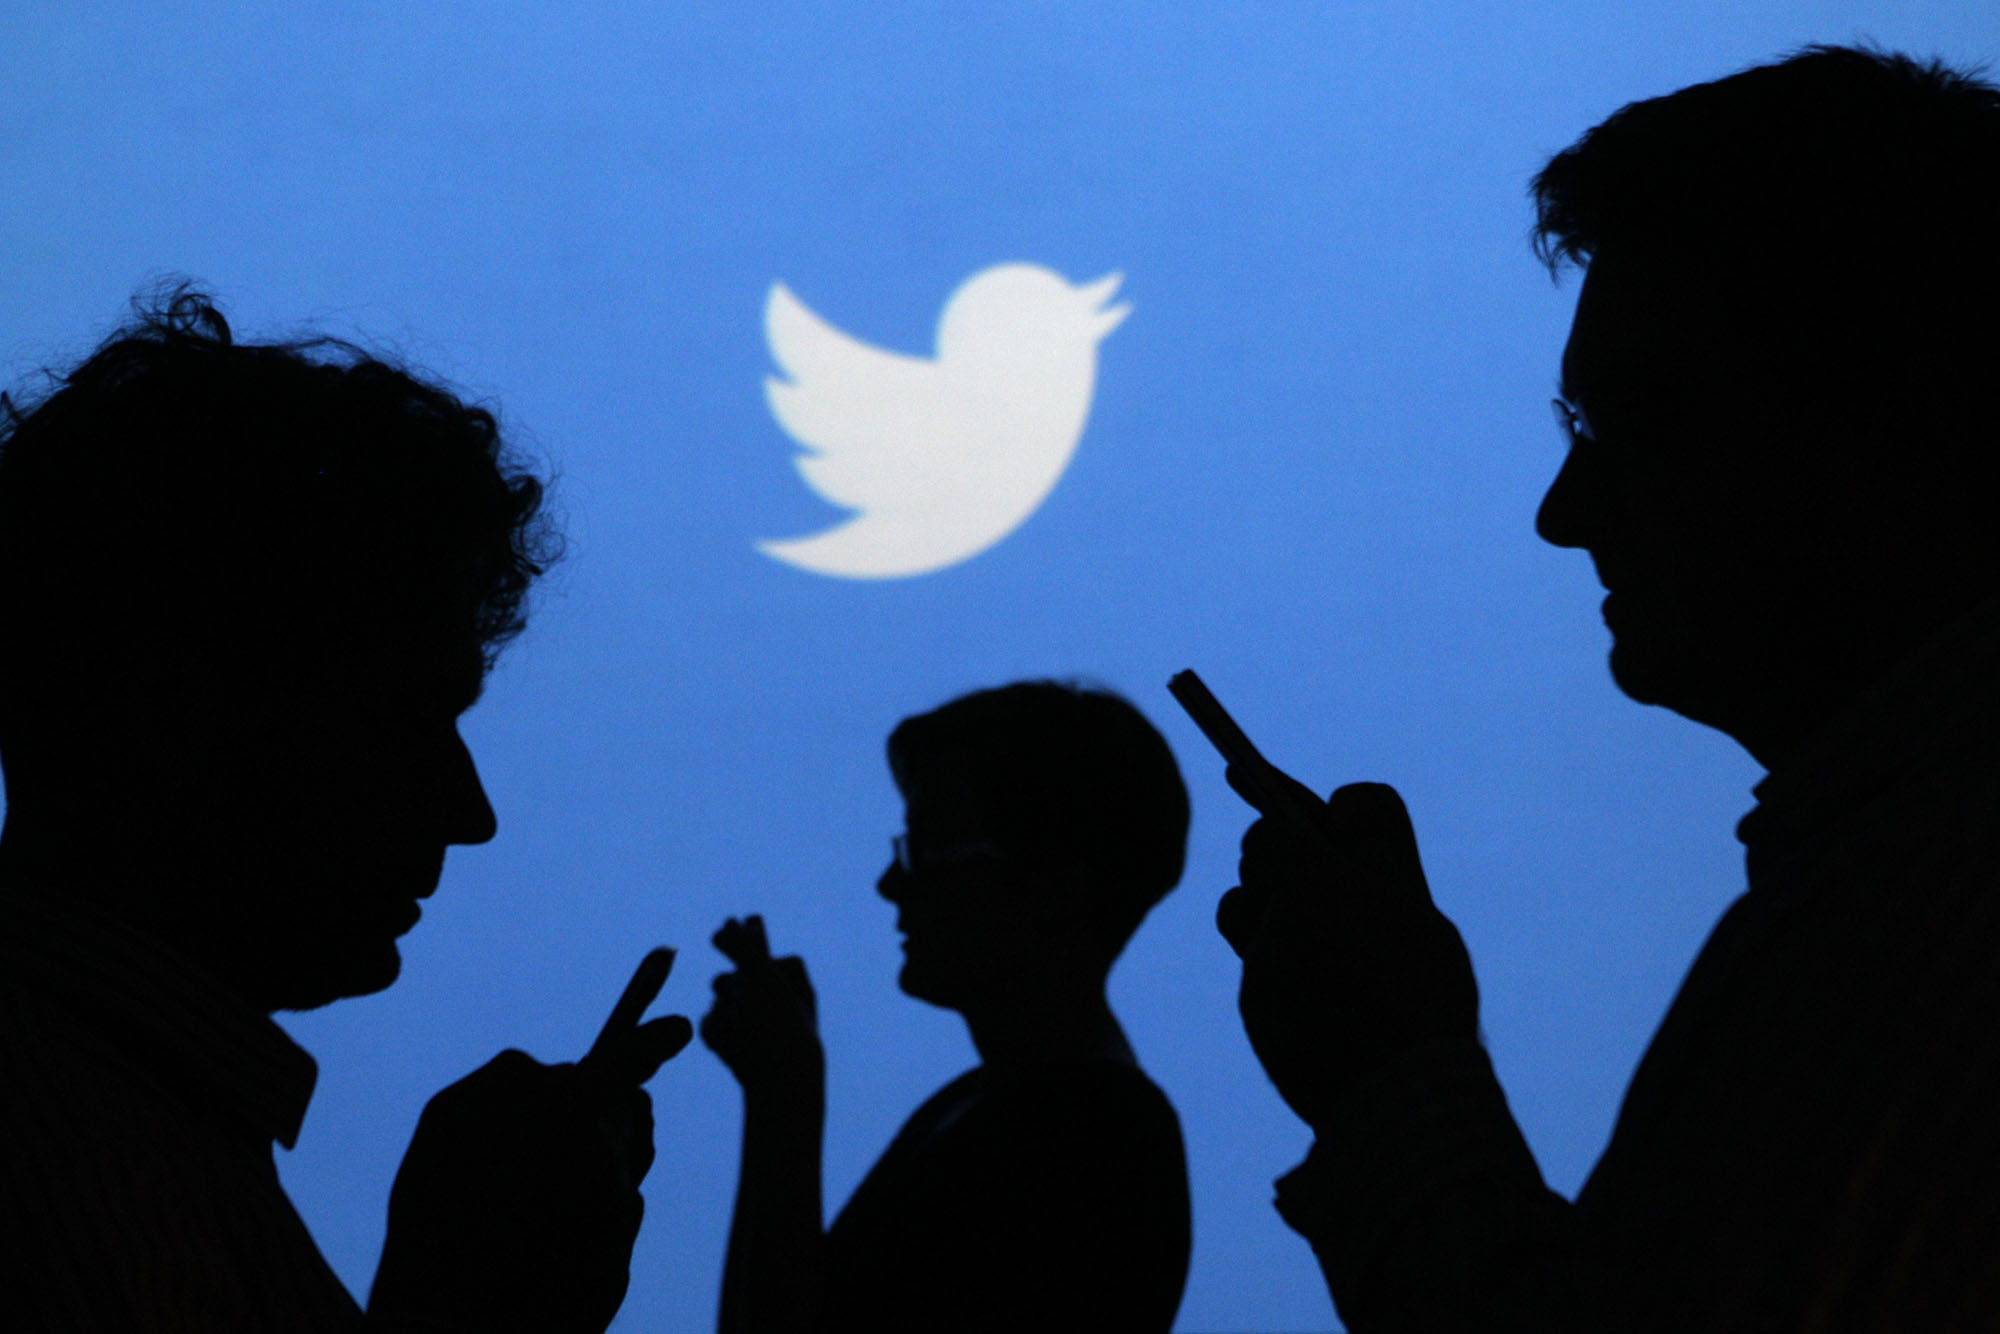 Twitter might ditch its 140-character limit for tweets